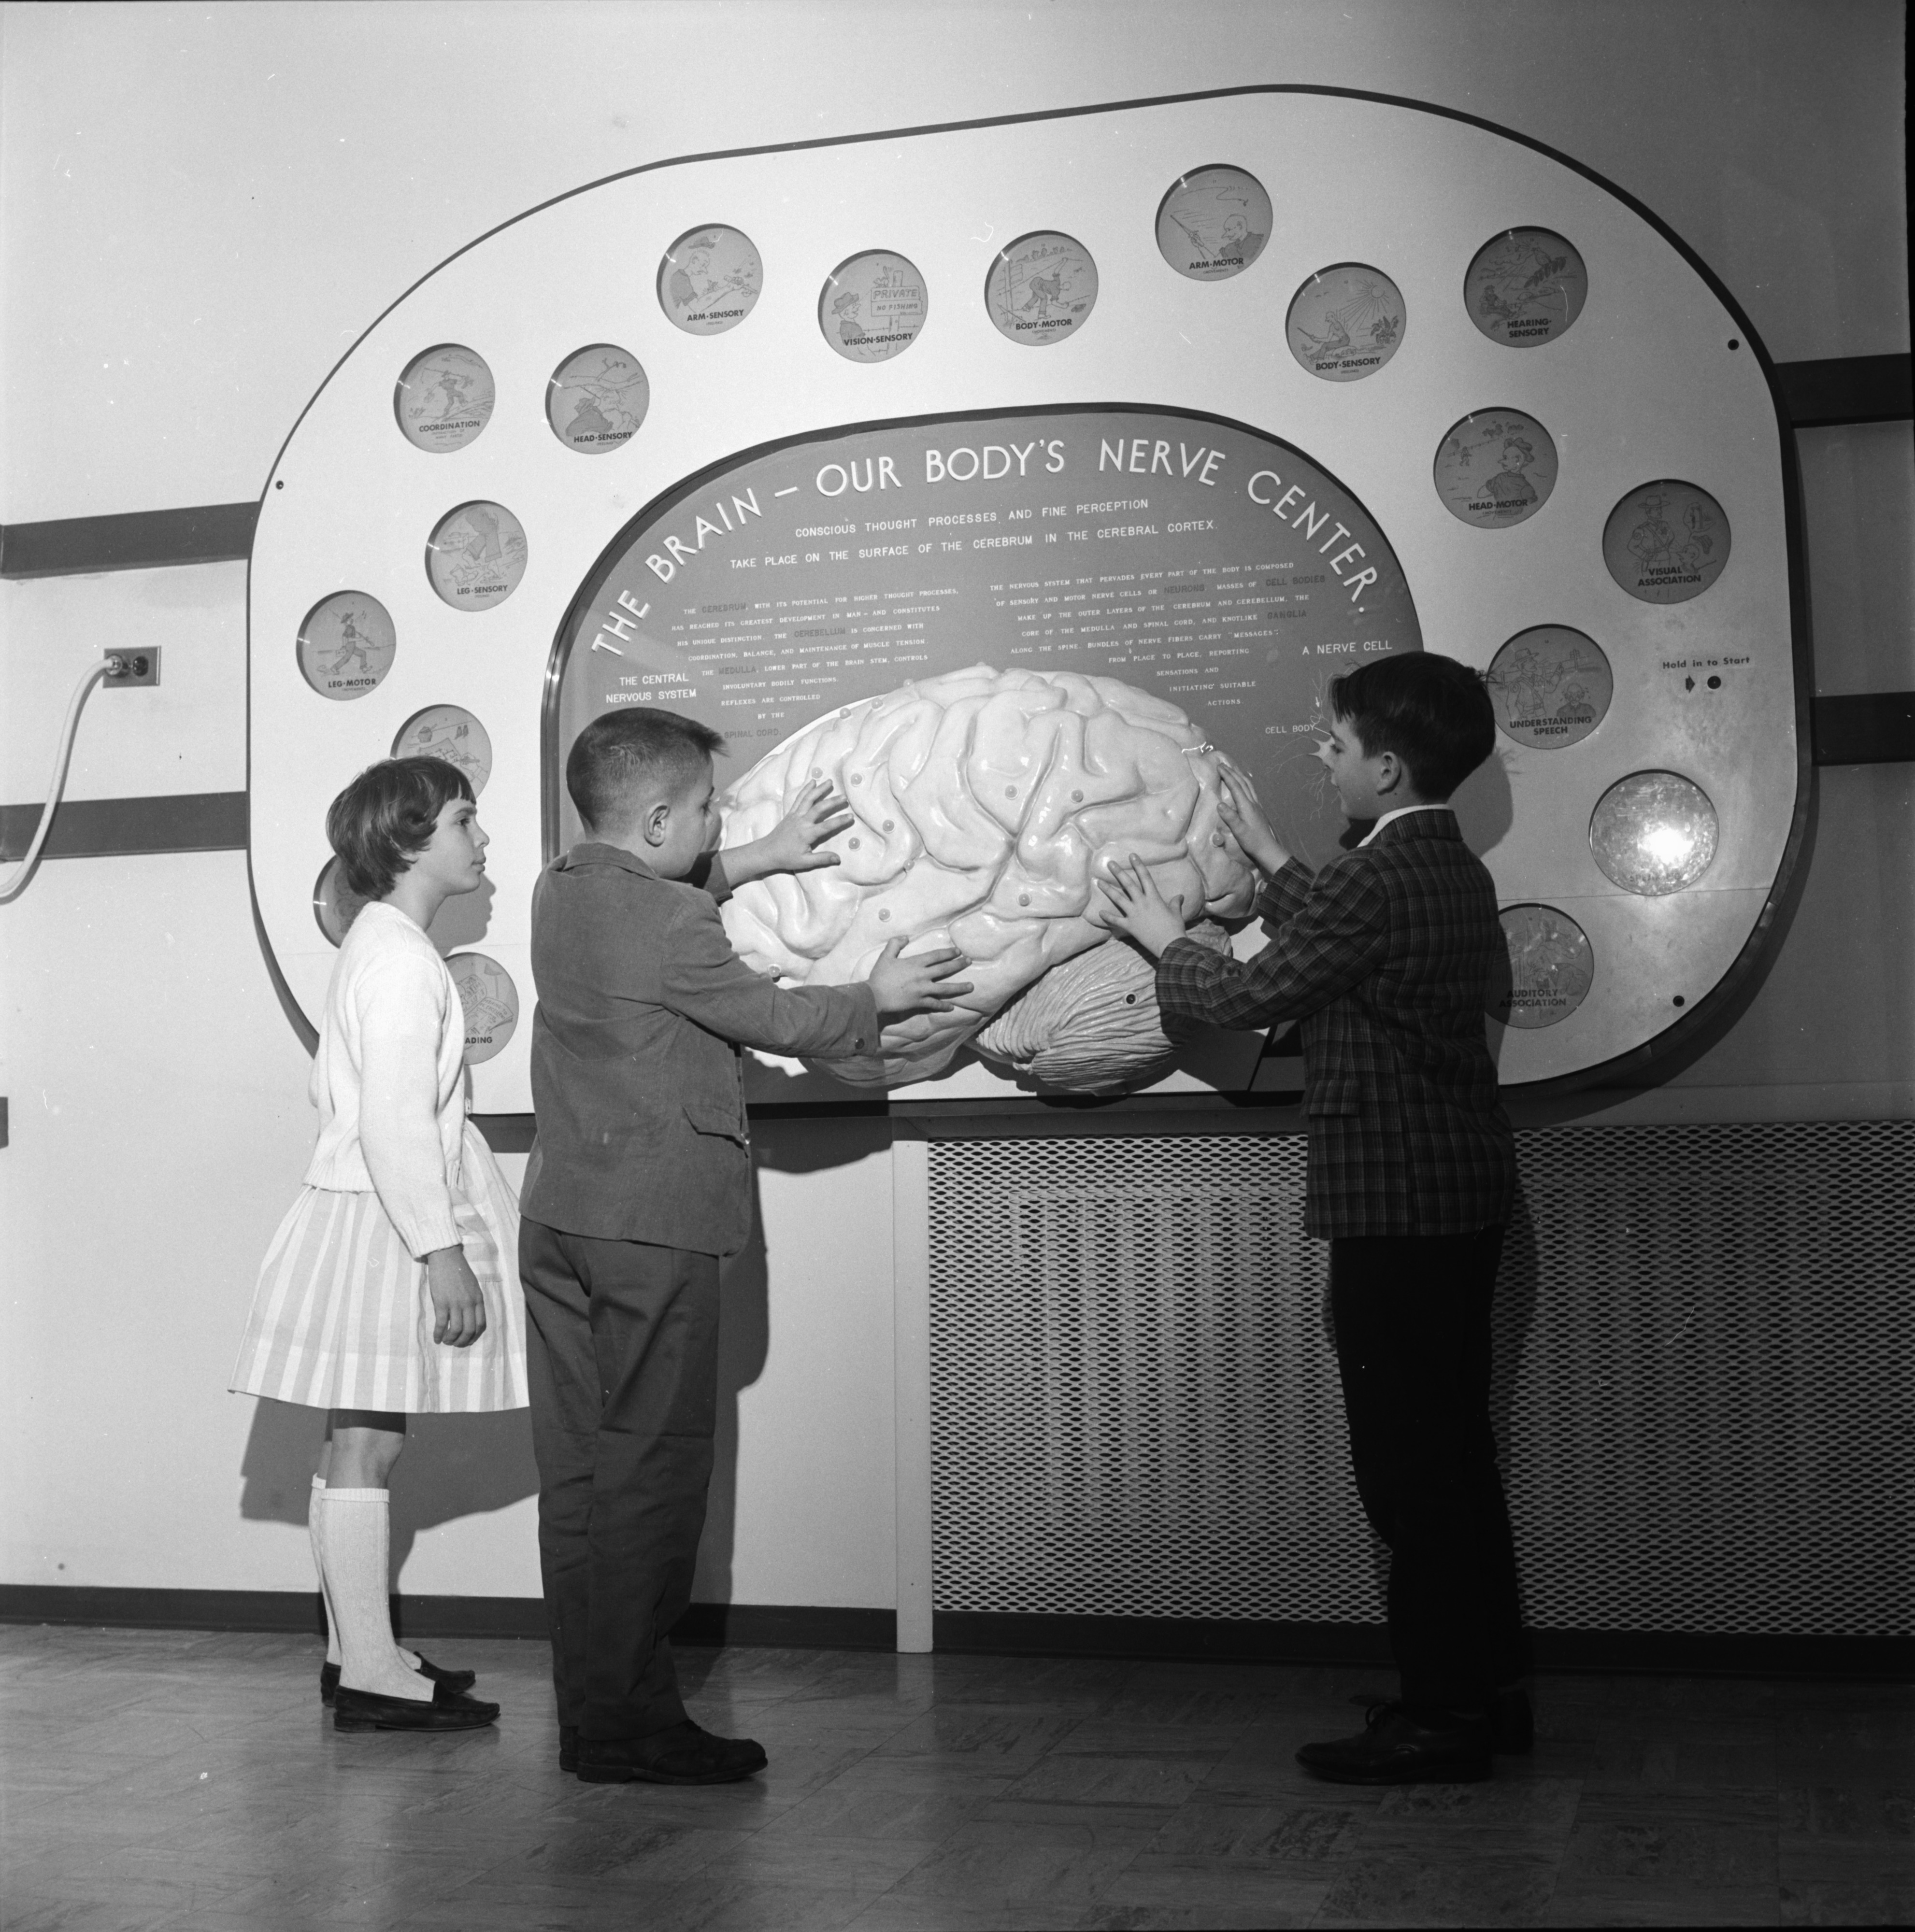 Nancy Bonedeo, Mike Dedes and Bob Boucher Examine Model Of Brain at University of Michigan Museum, February 1963 image